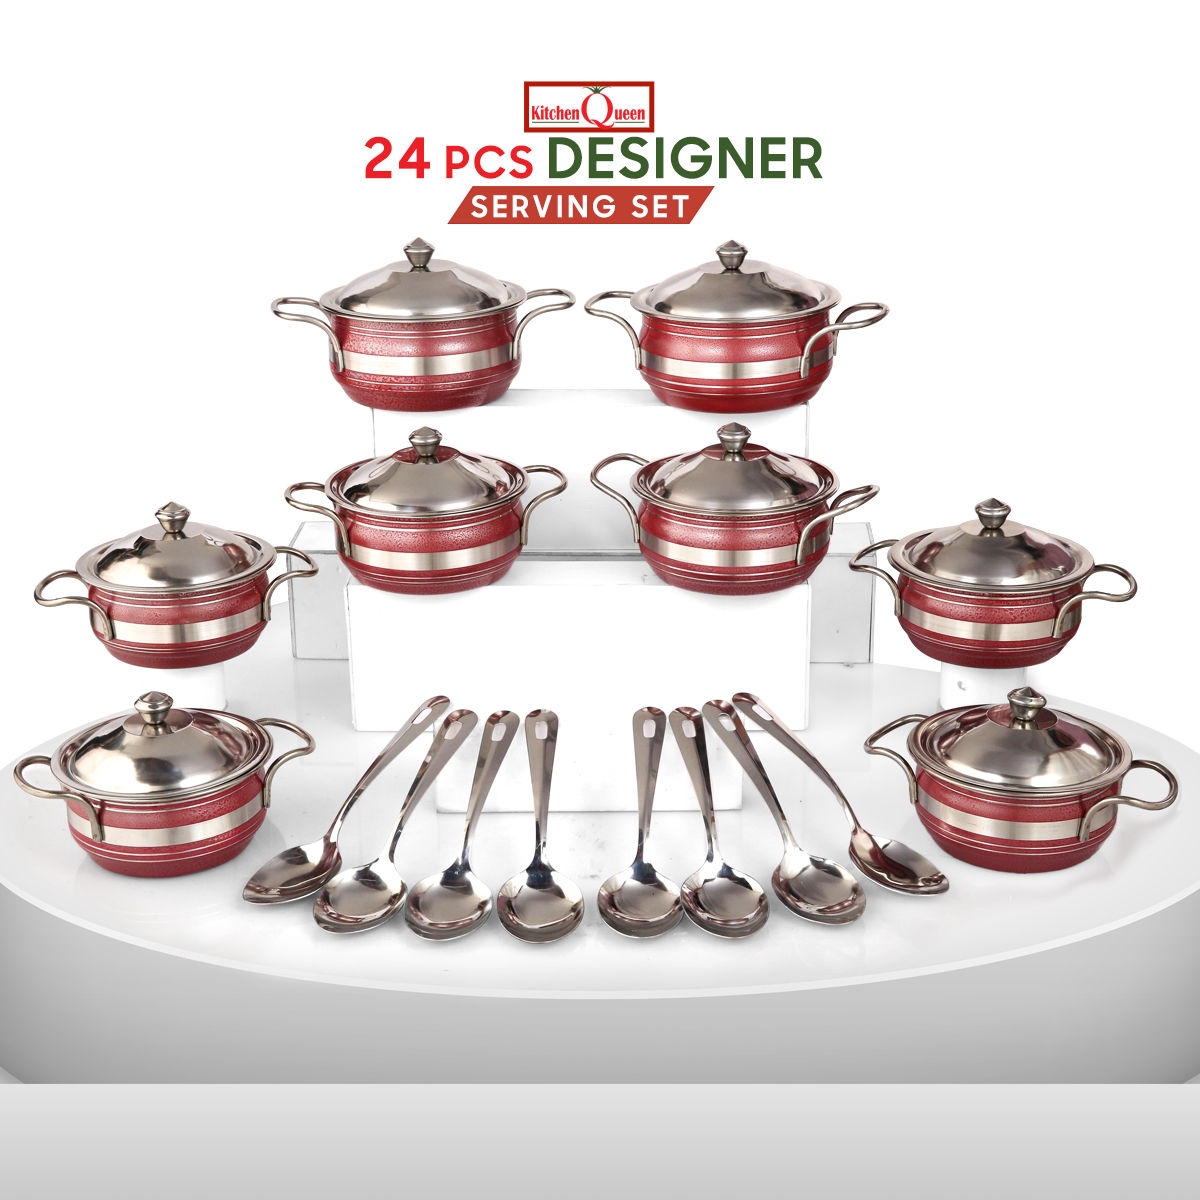 Buy 24 Pcs Designer Serving Set Online At Best Price In India On